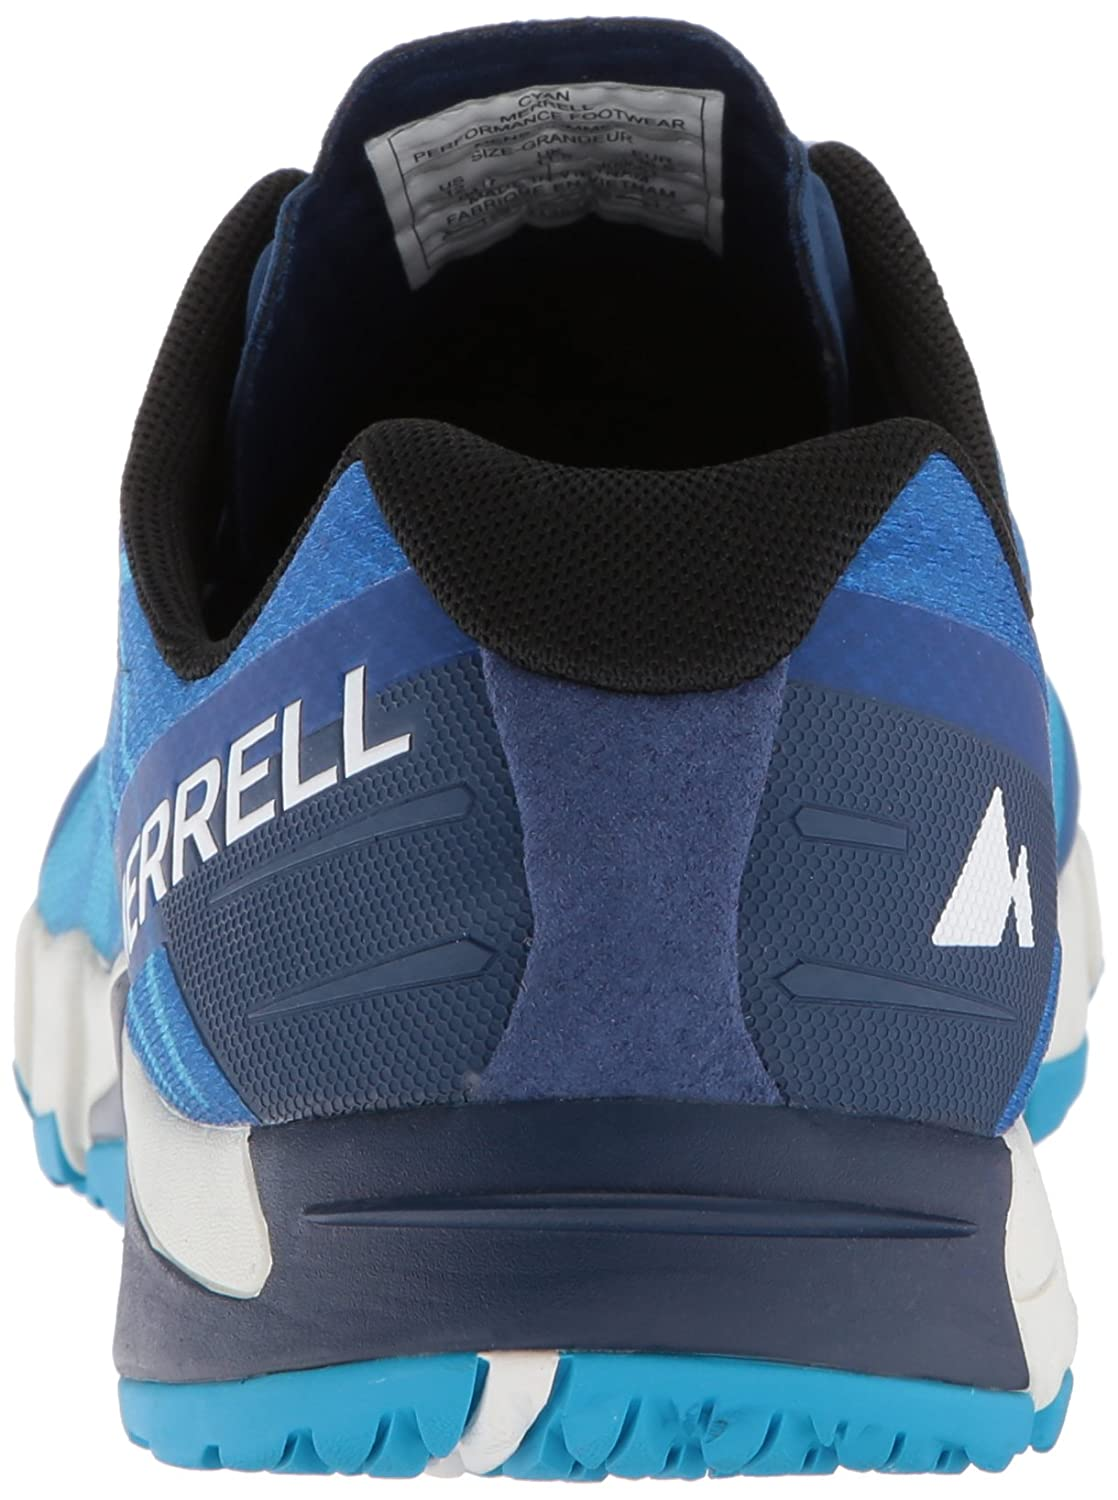 Merrell Mens Bare Access Flex Trail Runner Merrell Footwear